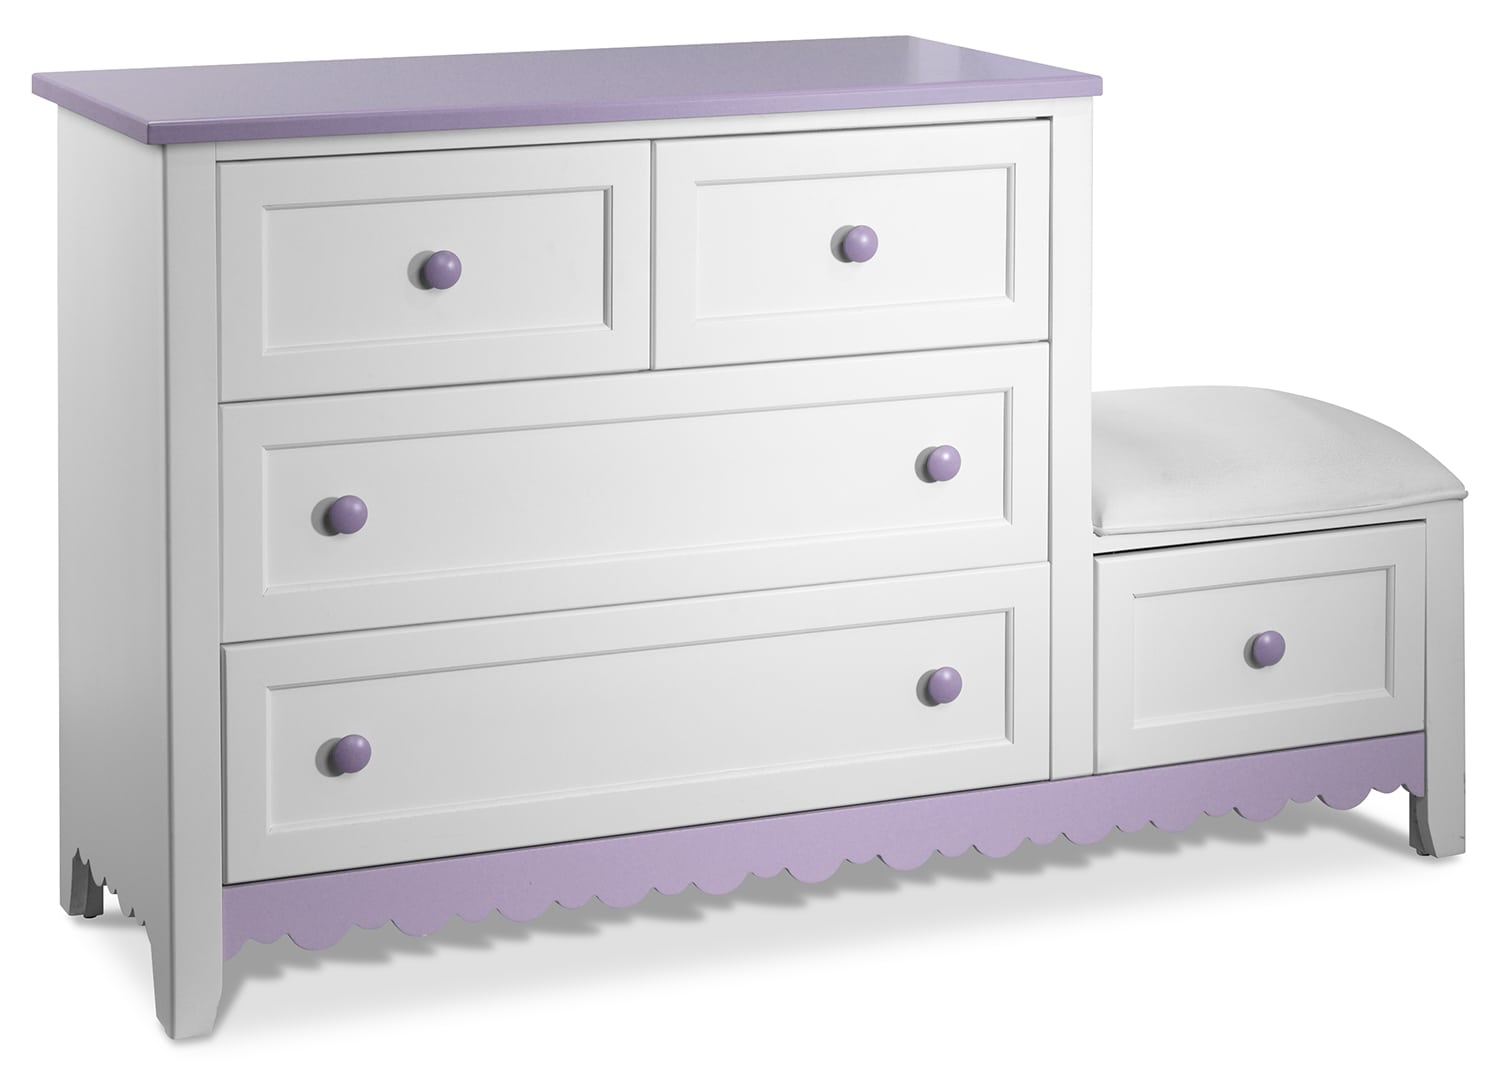 Kids Furniture - Sweetdreams Dresser - White and Lavender